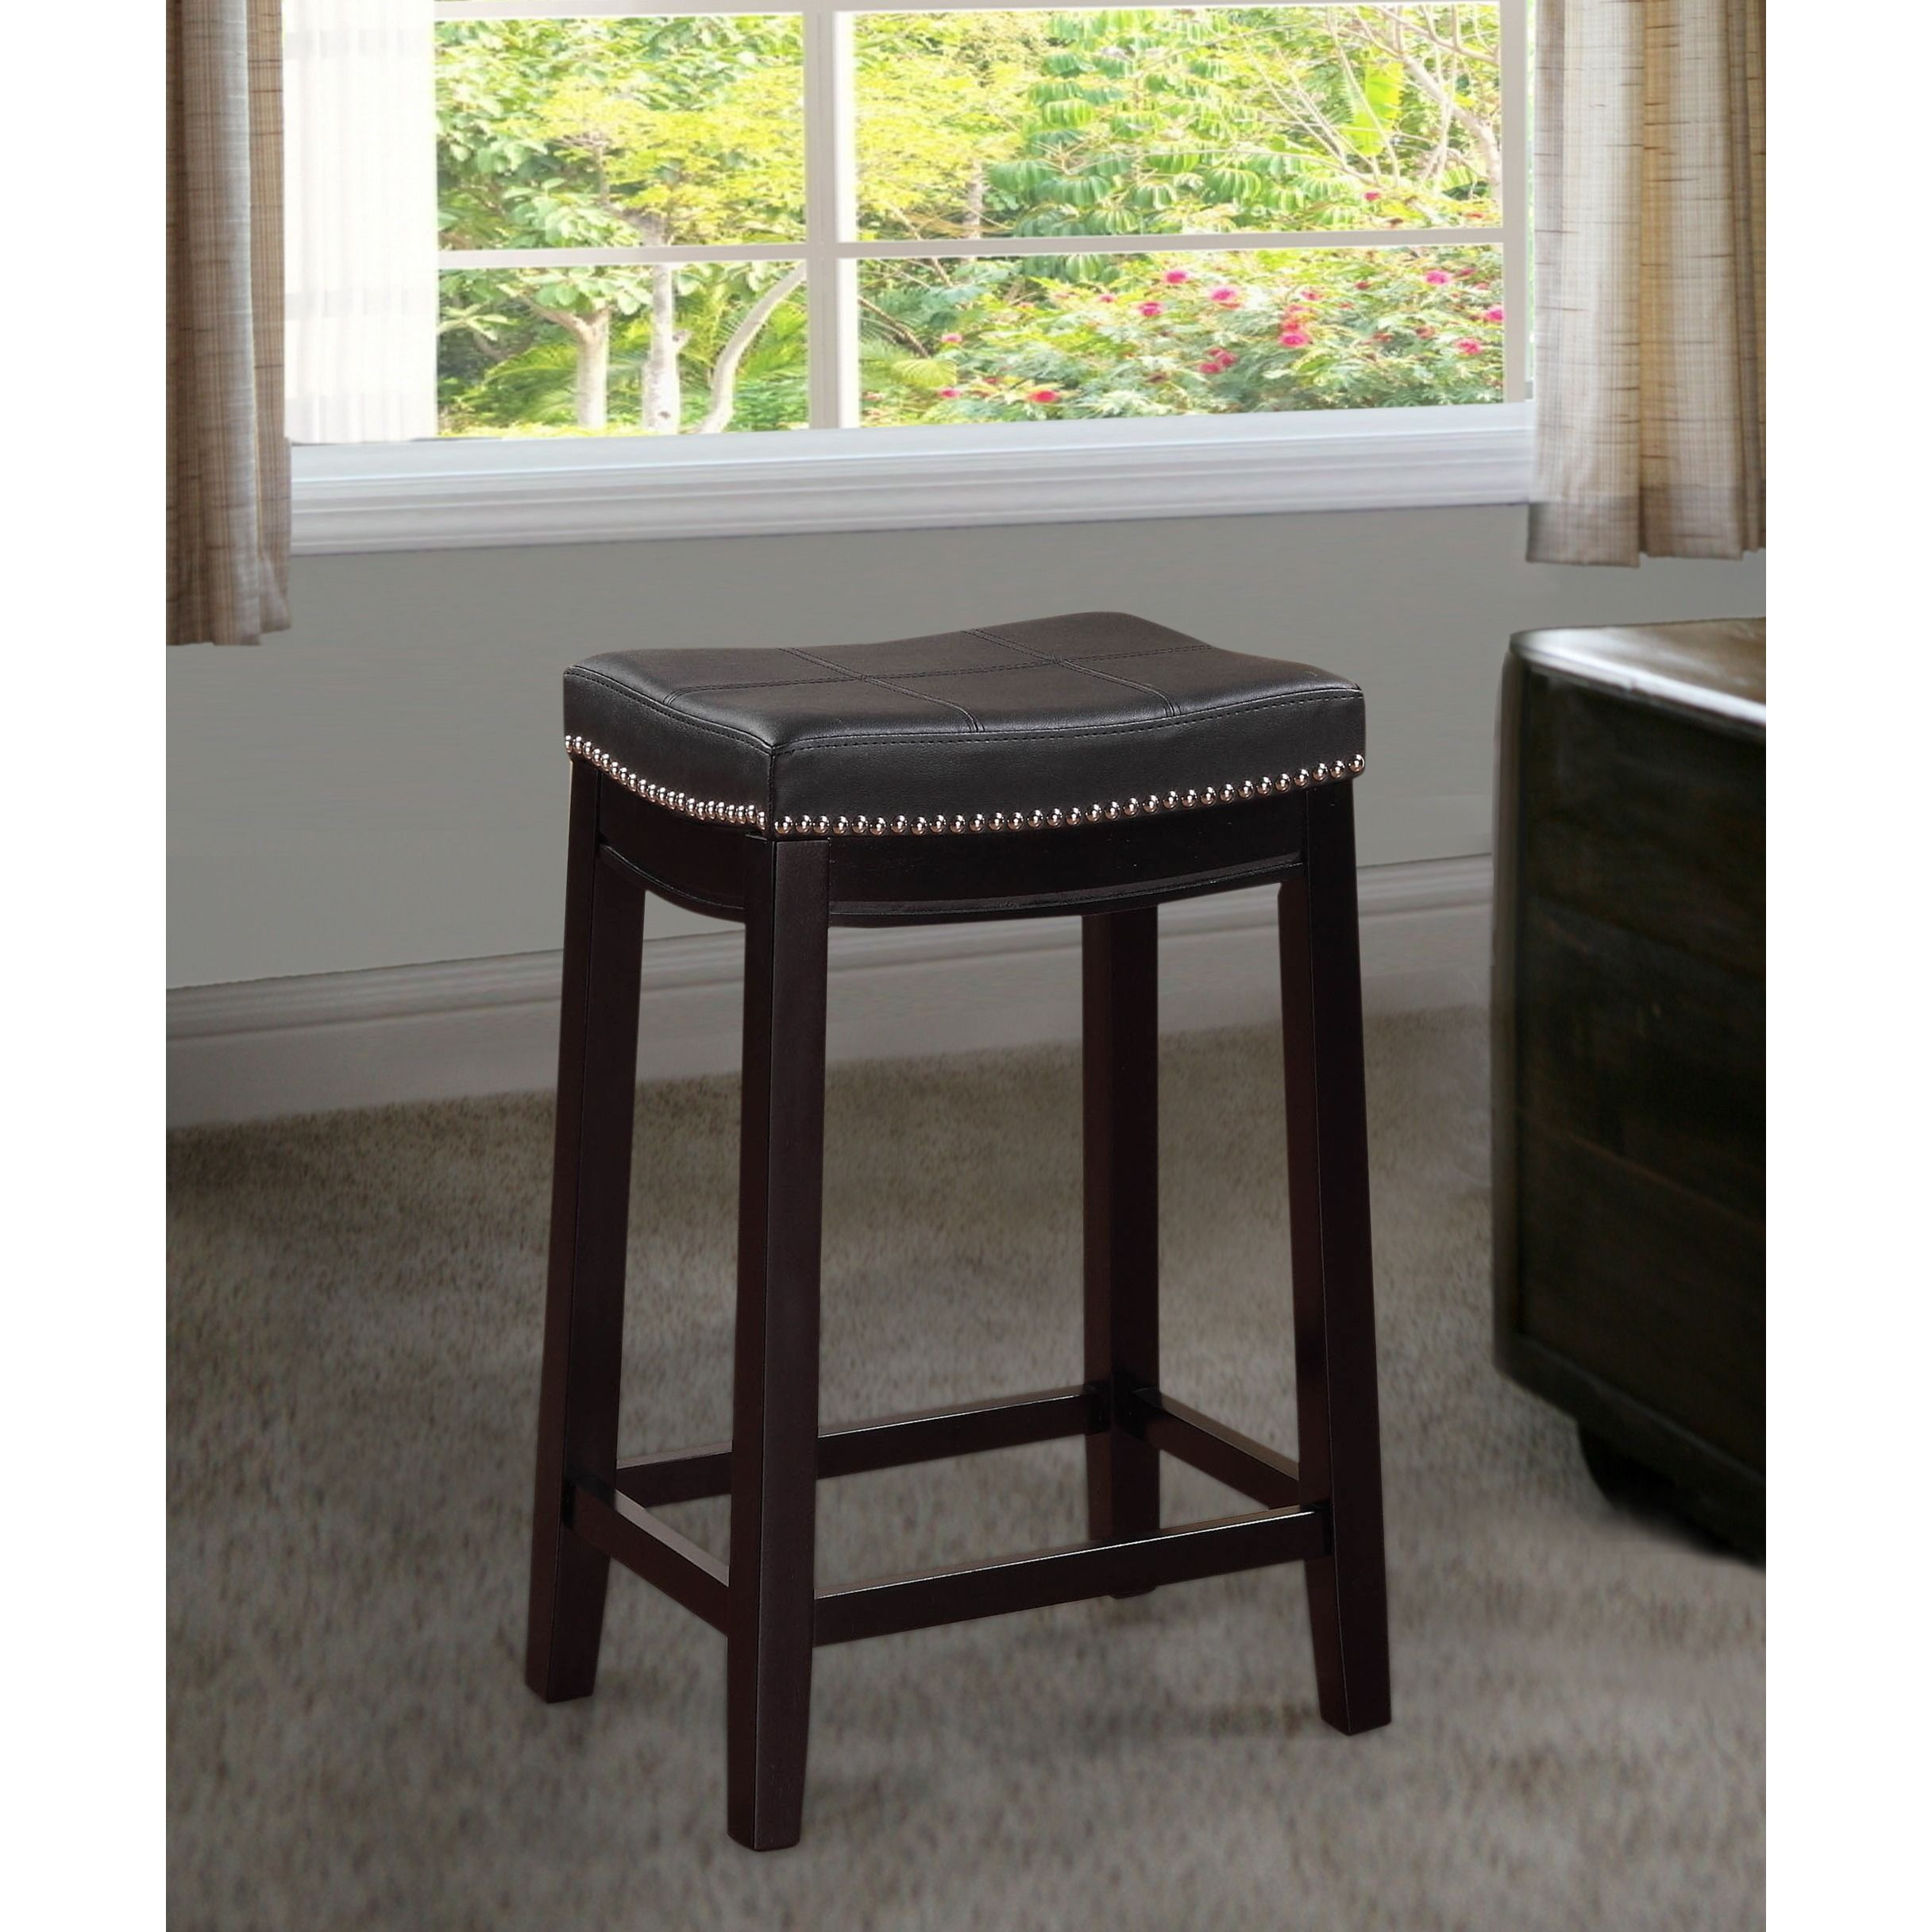 Linon manhattanesque backless counter stool with black vinyl seat claridge black counter stool rubberwood